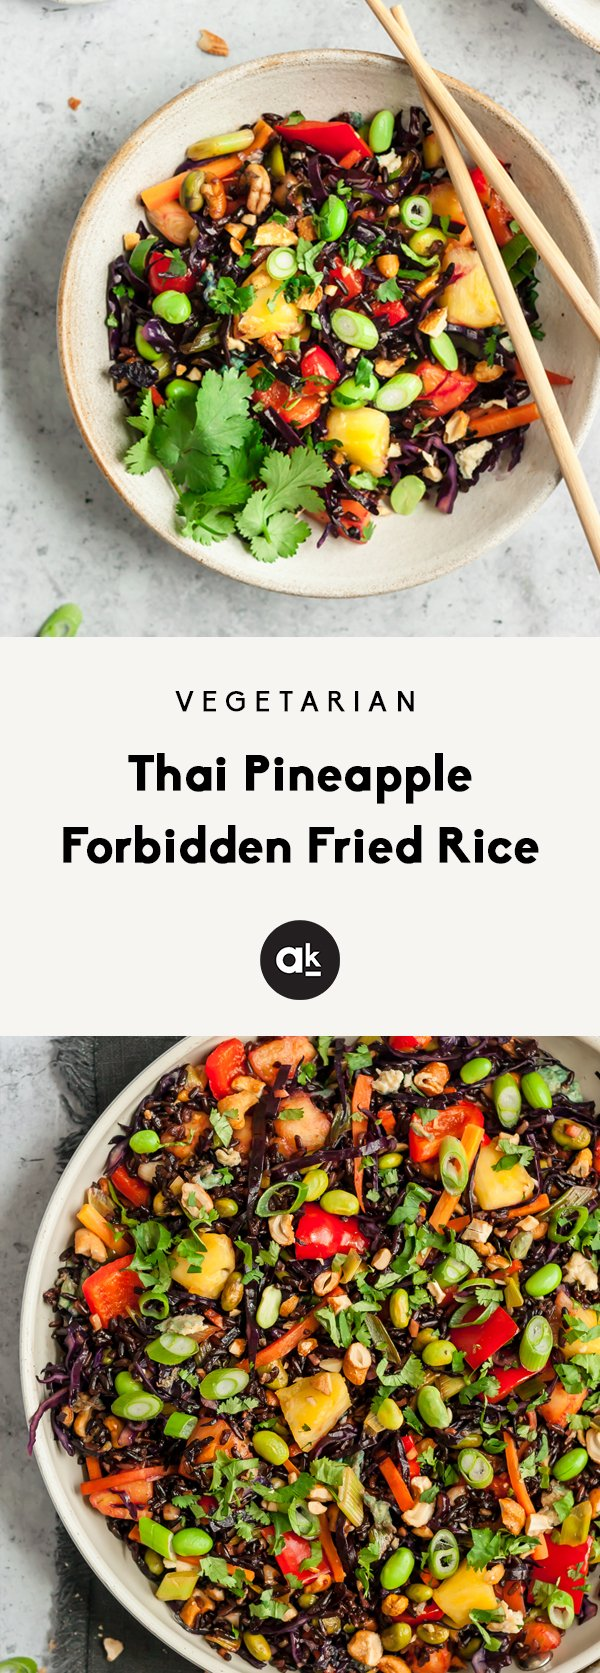 Incredible vegetarian fried rice made with low carb forbidden rice, gorgeous veggies like red bell pepper, carrots & red cabbage, and a hint of sweetness from pineapple. This healthy vegetarian dinner packs plenty of protein from eggs and edamame, too!